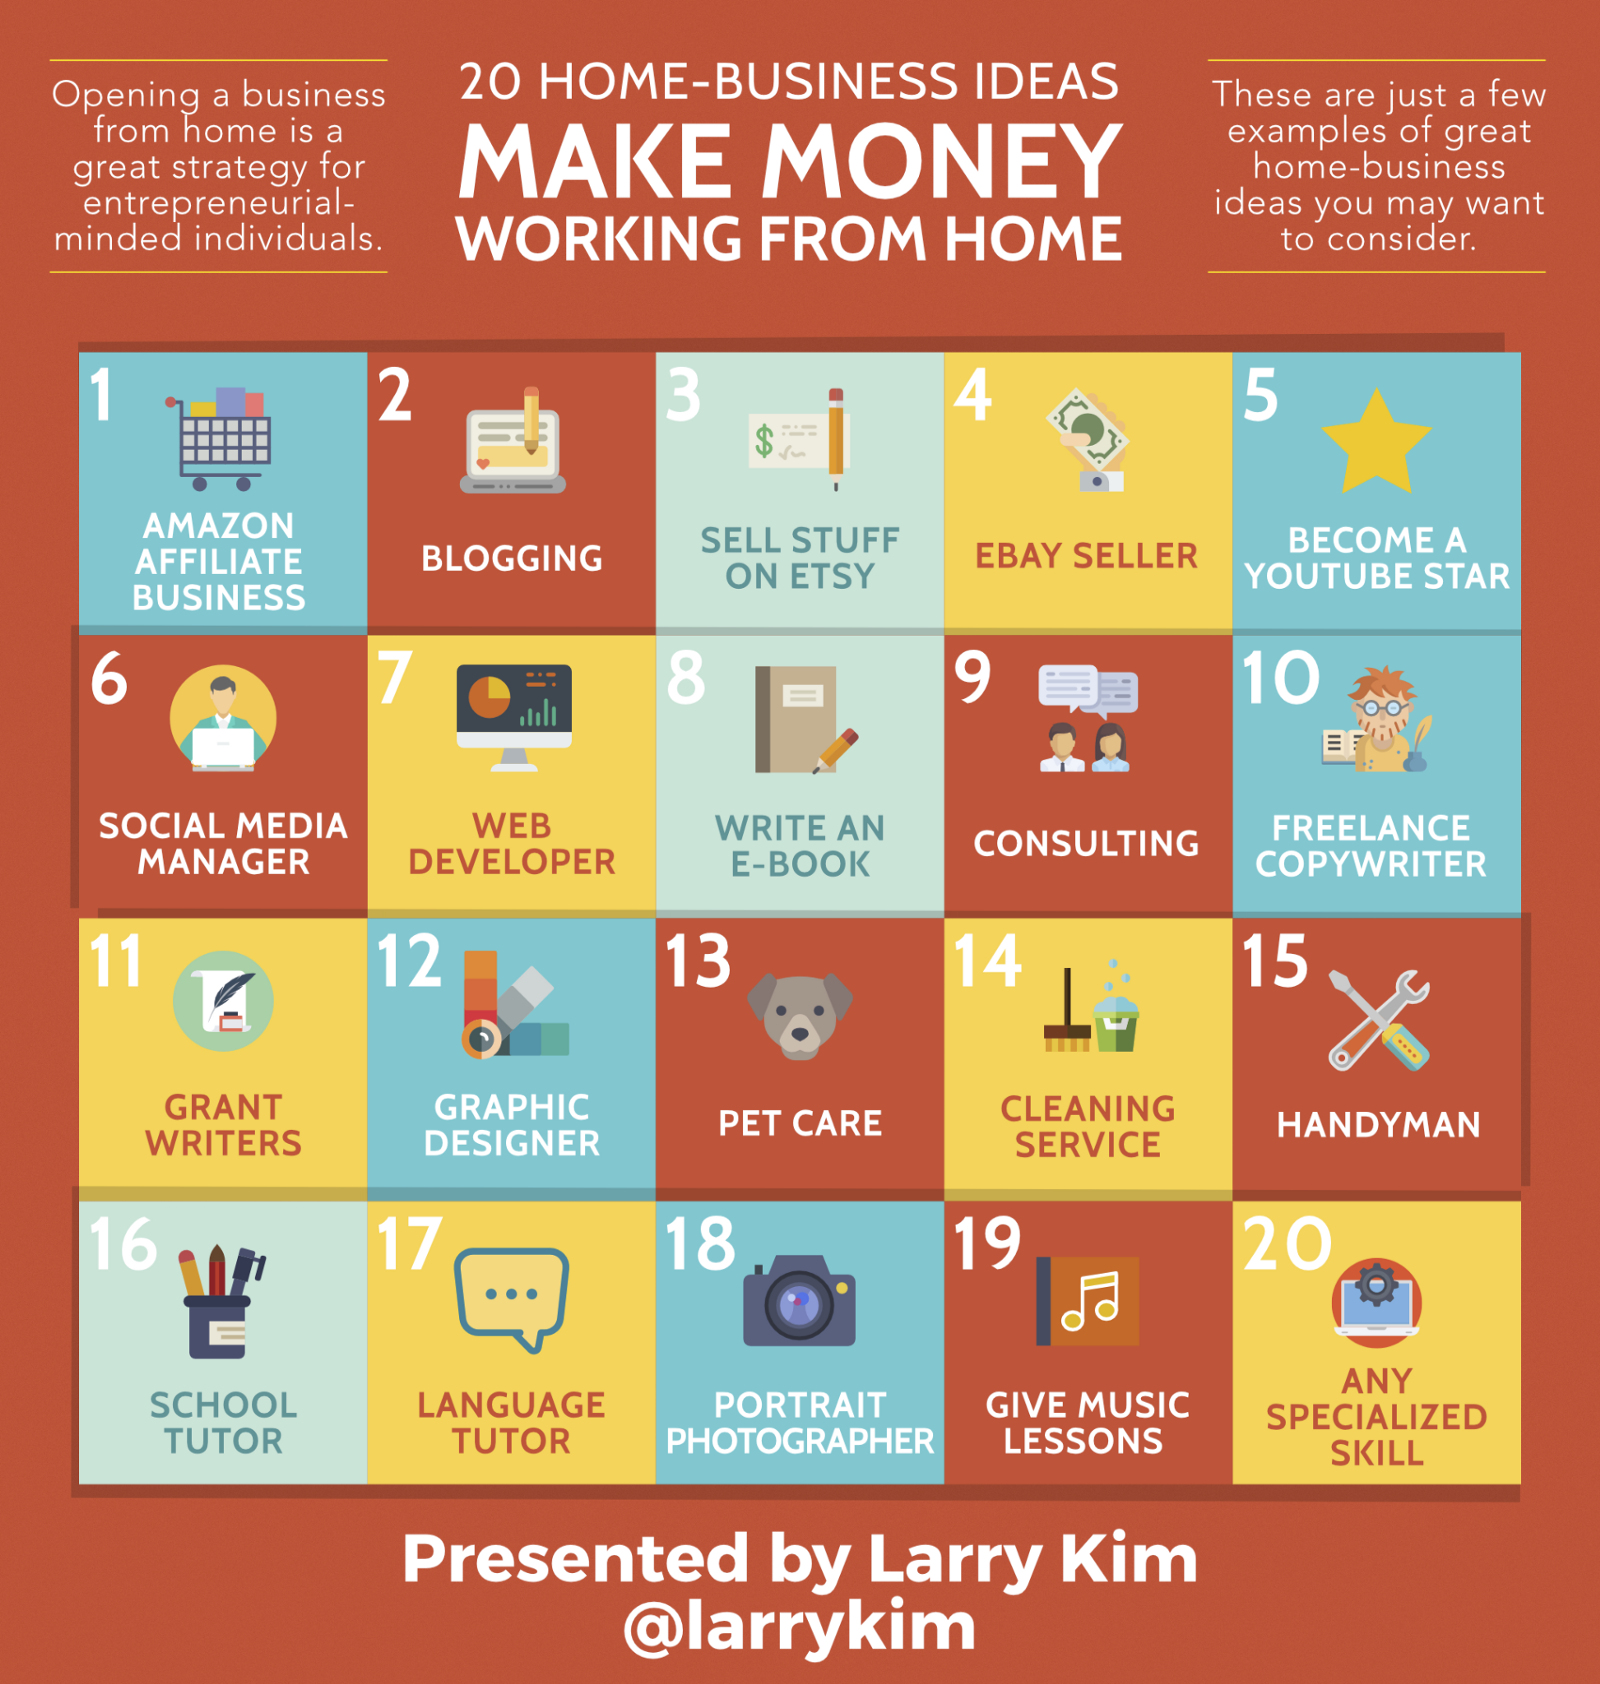 20 Home-Business Ideas: Make Money Working From Home